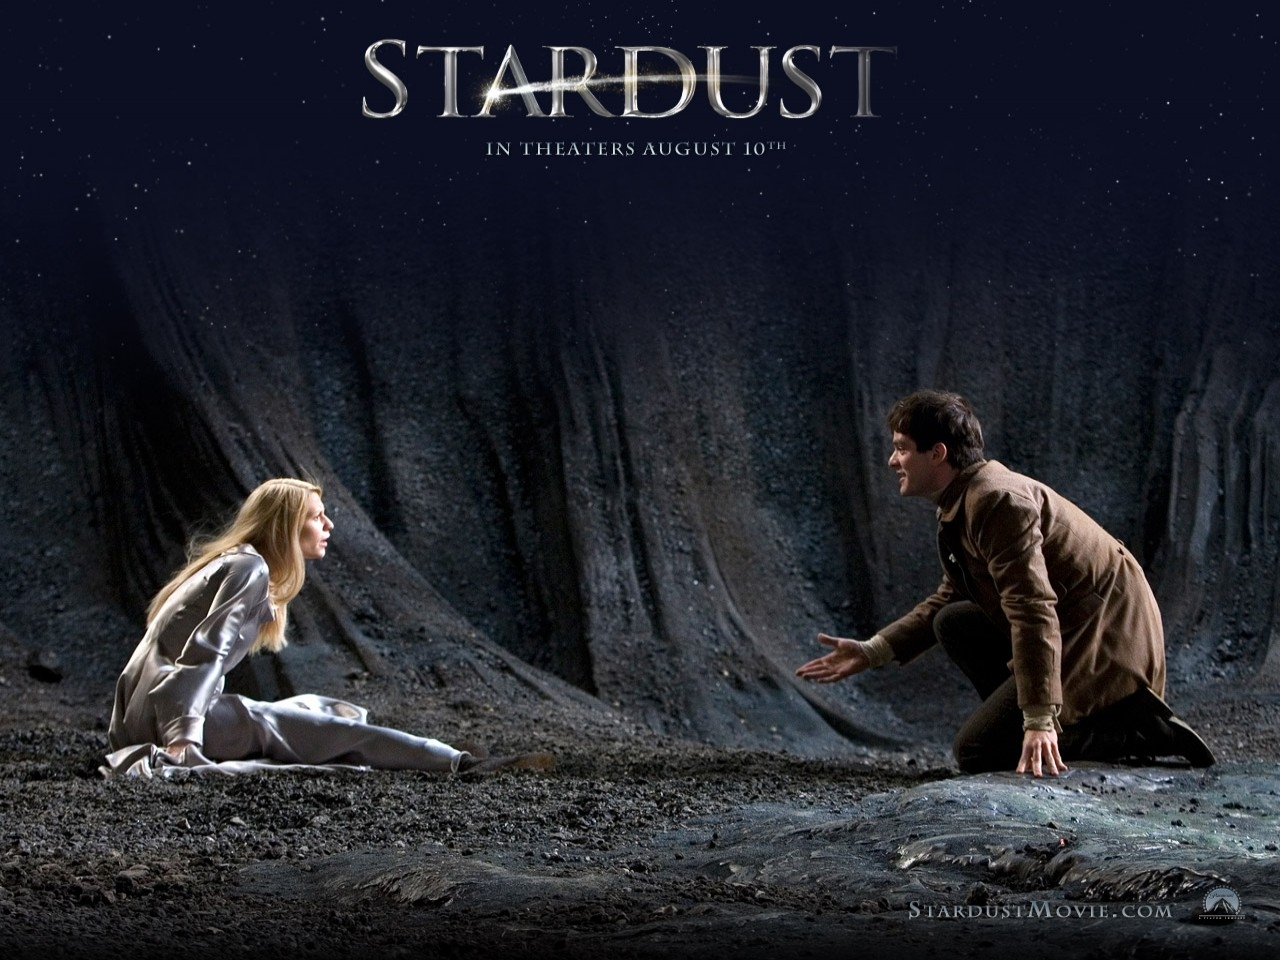 Wallpaper del film Stardust con i due protagonisti del film